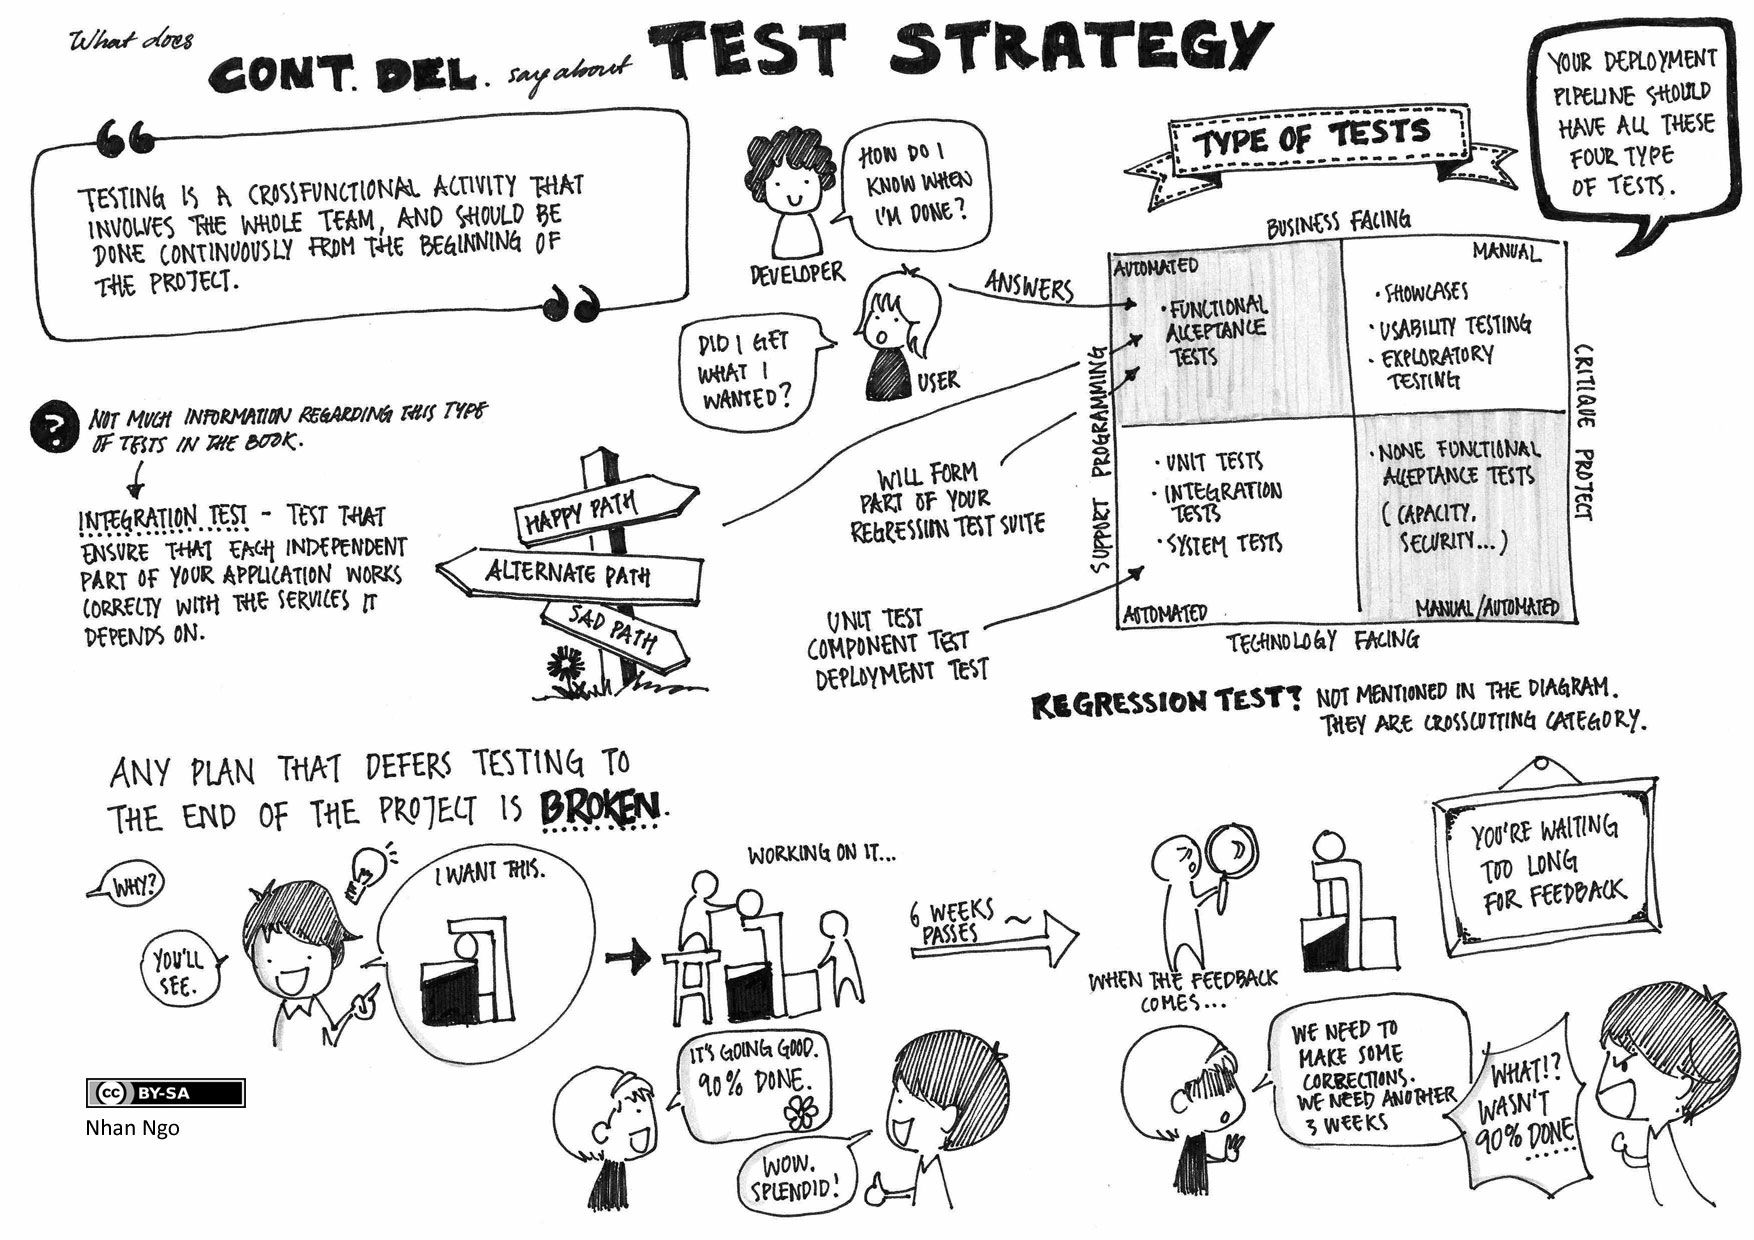 Test strategy visualized. Post has great visuals on